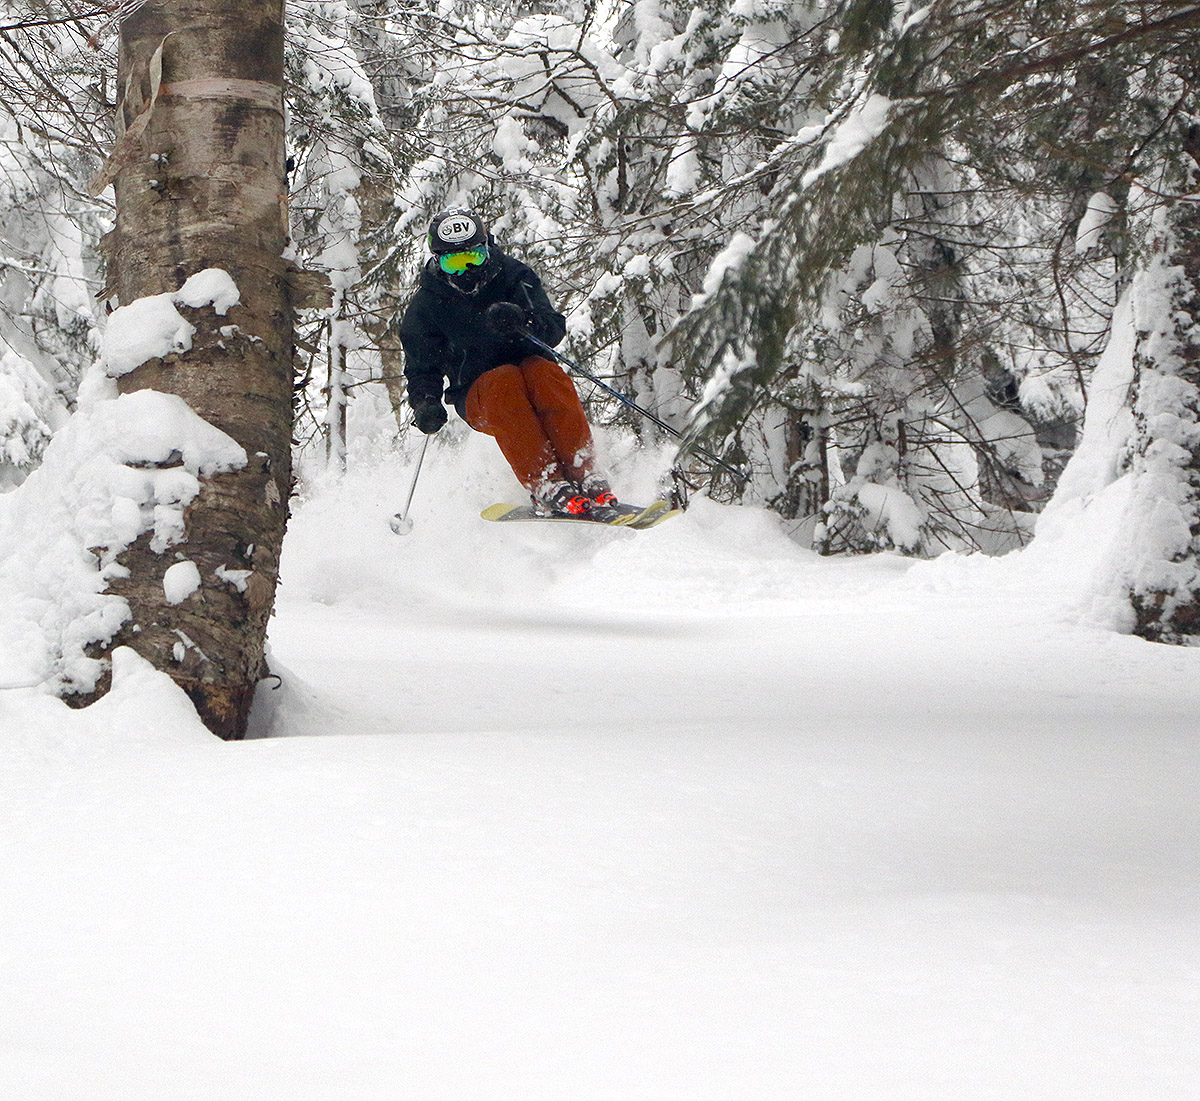 An image of Ty jumping into some untracked powder in a ski line off The Knob at Bolton Valley Ski Resort in Vermont